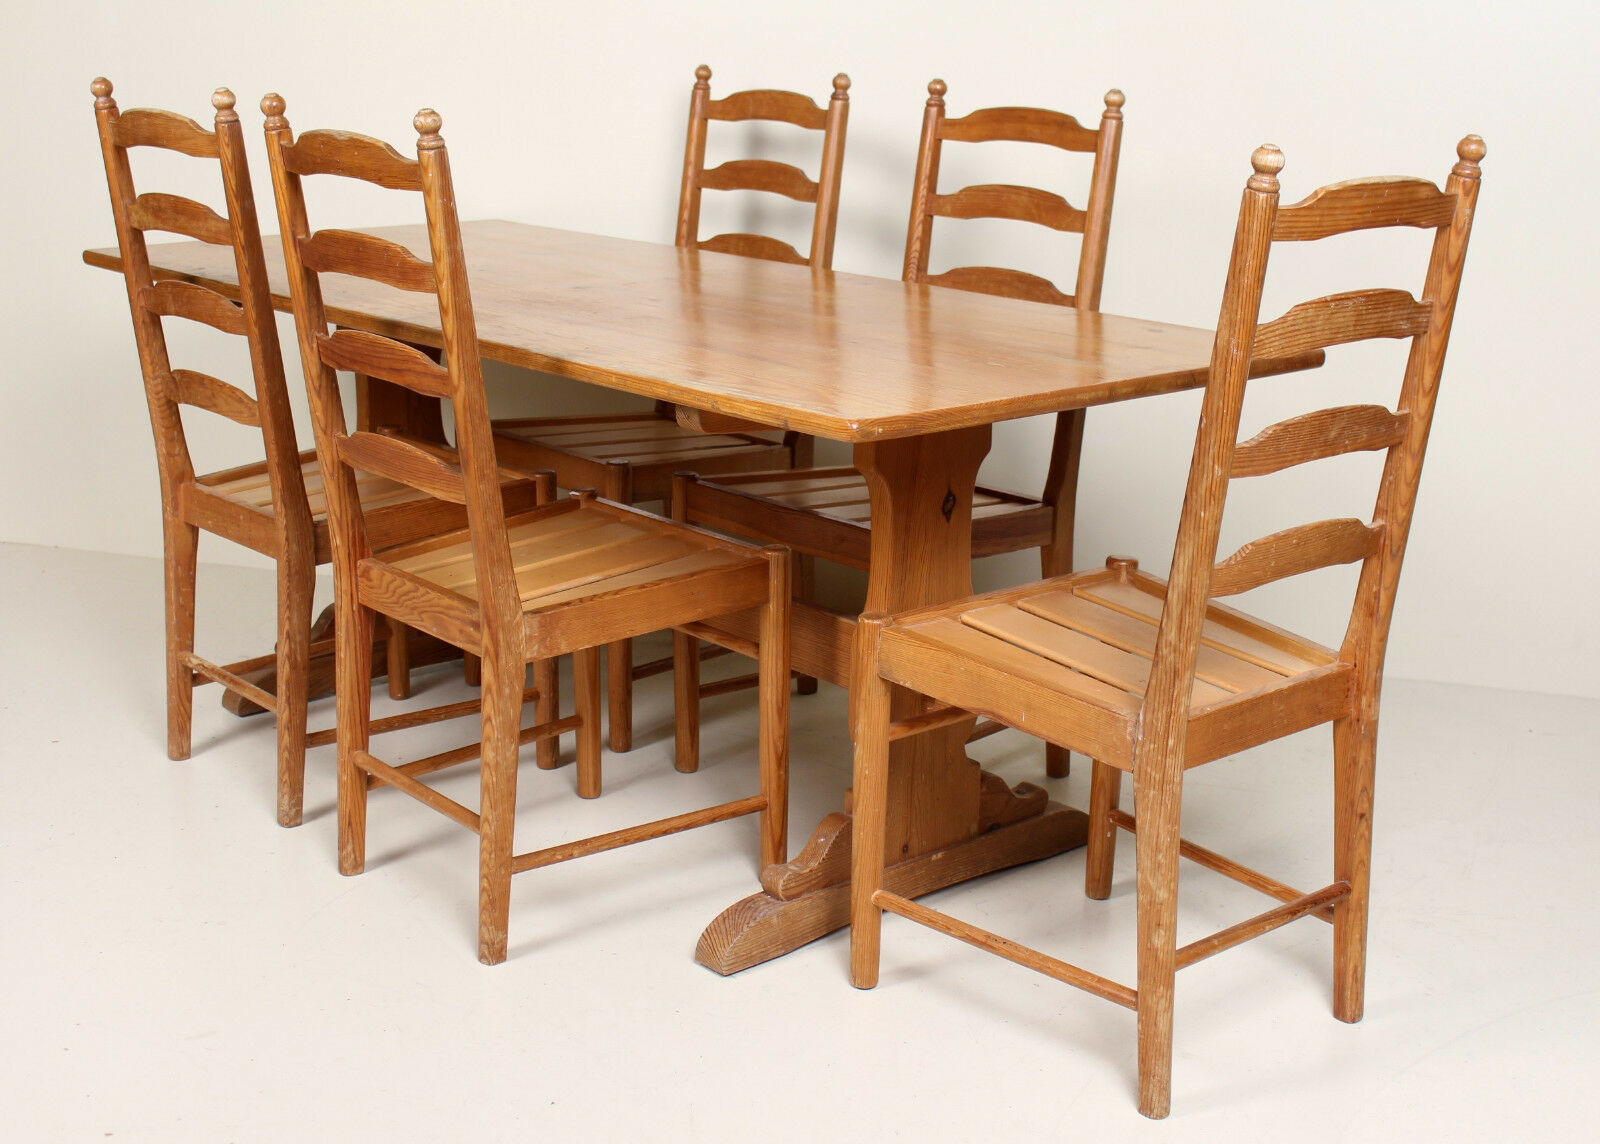 Dining Room Furniture Rustic Vintage Ercol Pine Refectory Dining Table And 5 Chairs Rustic Country Farmhouse